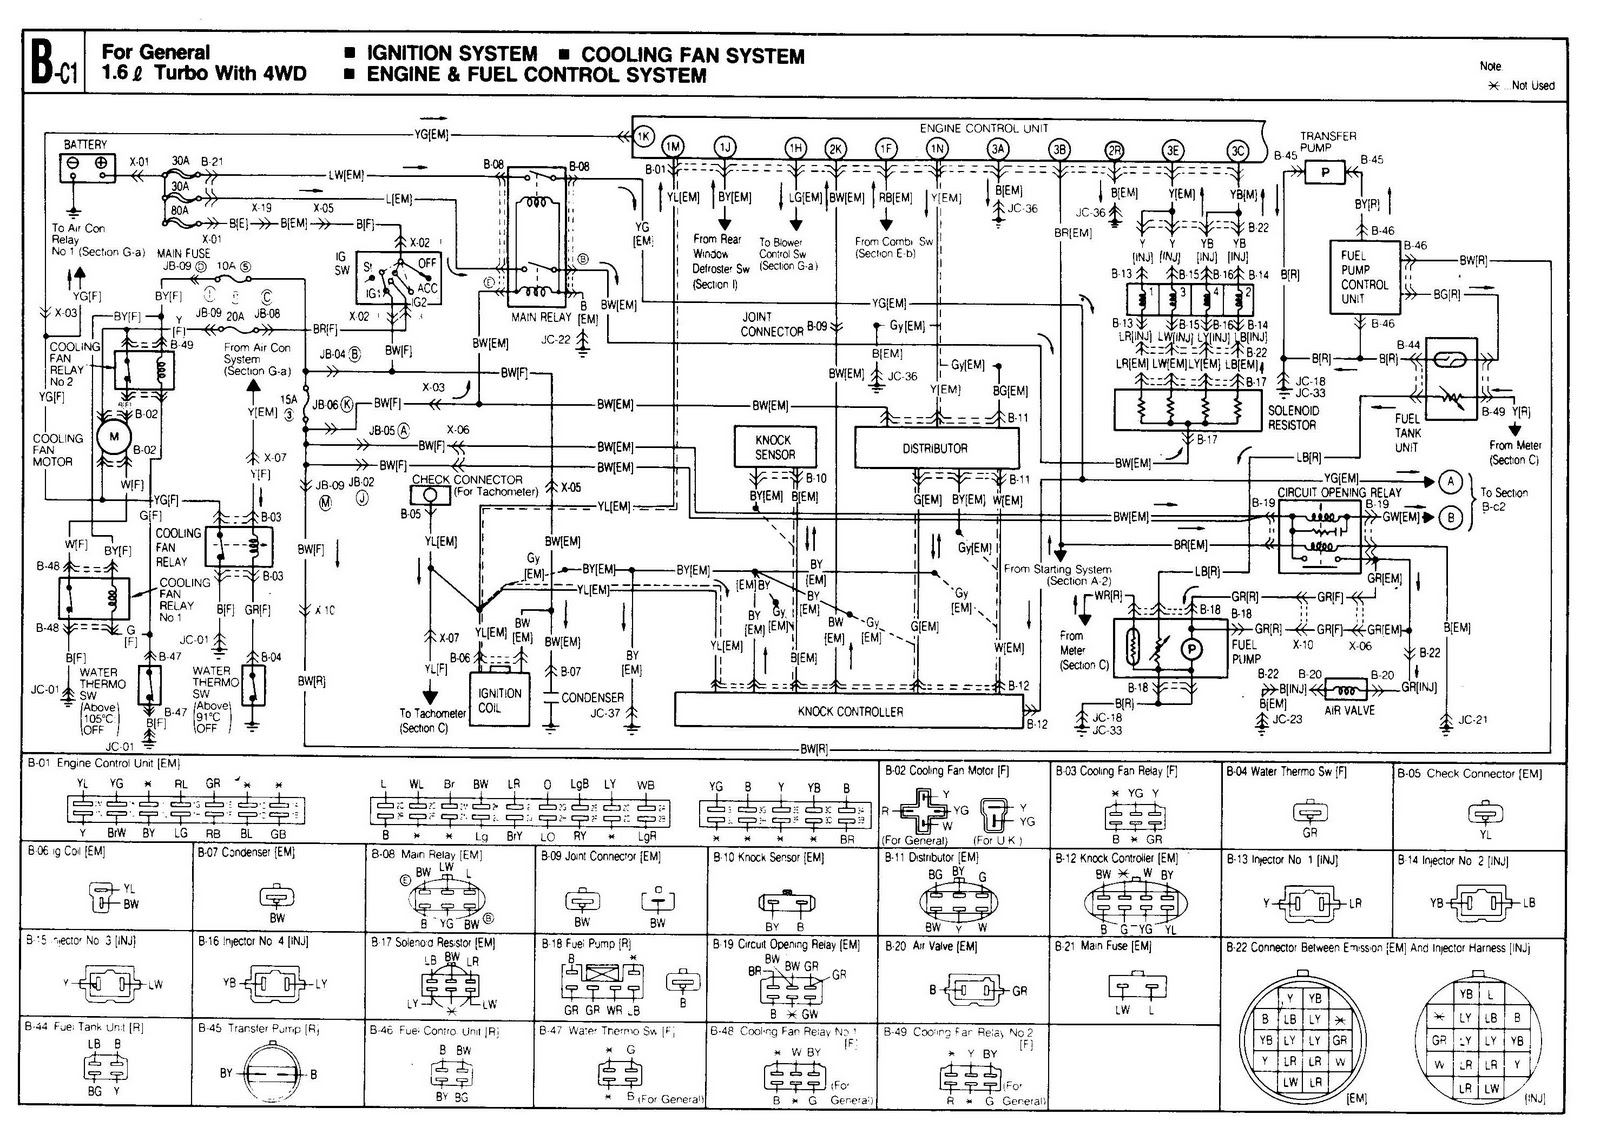 mazda rx wiring diagram mazda wiring diagrams online mazda bp wiring diagram mazda wiring diagrams